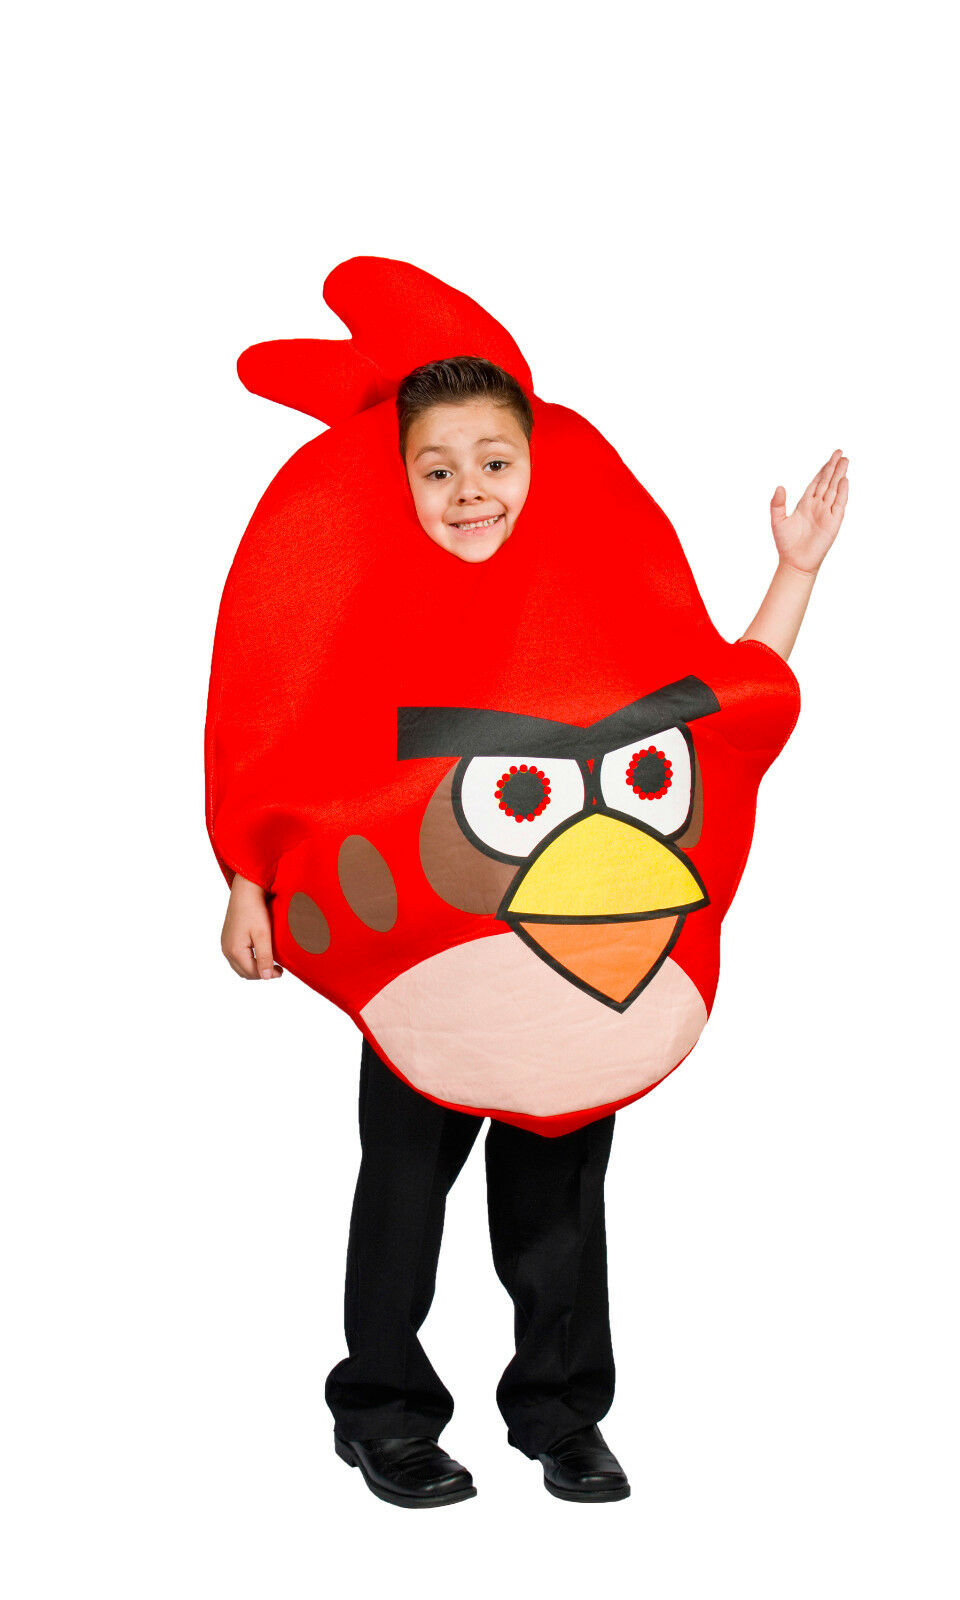 red angry bird light up costume kids halloween boys & girls size 5 6